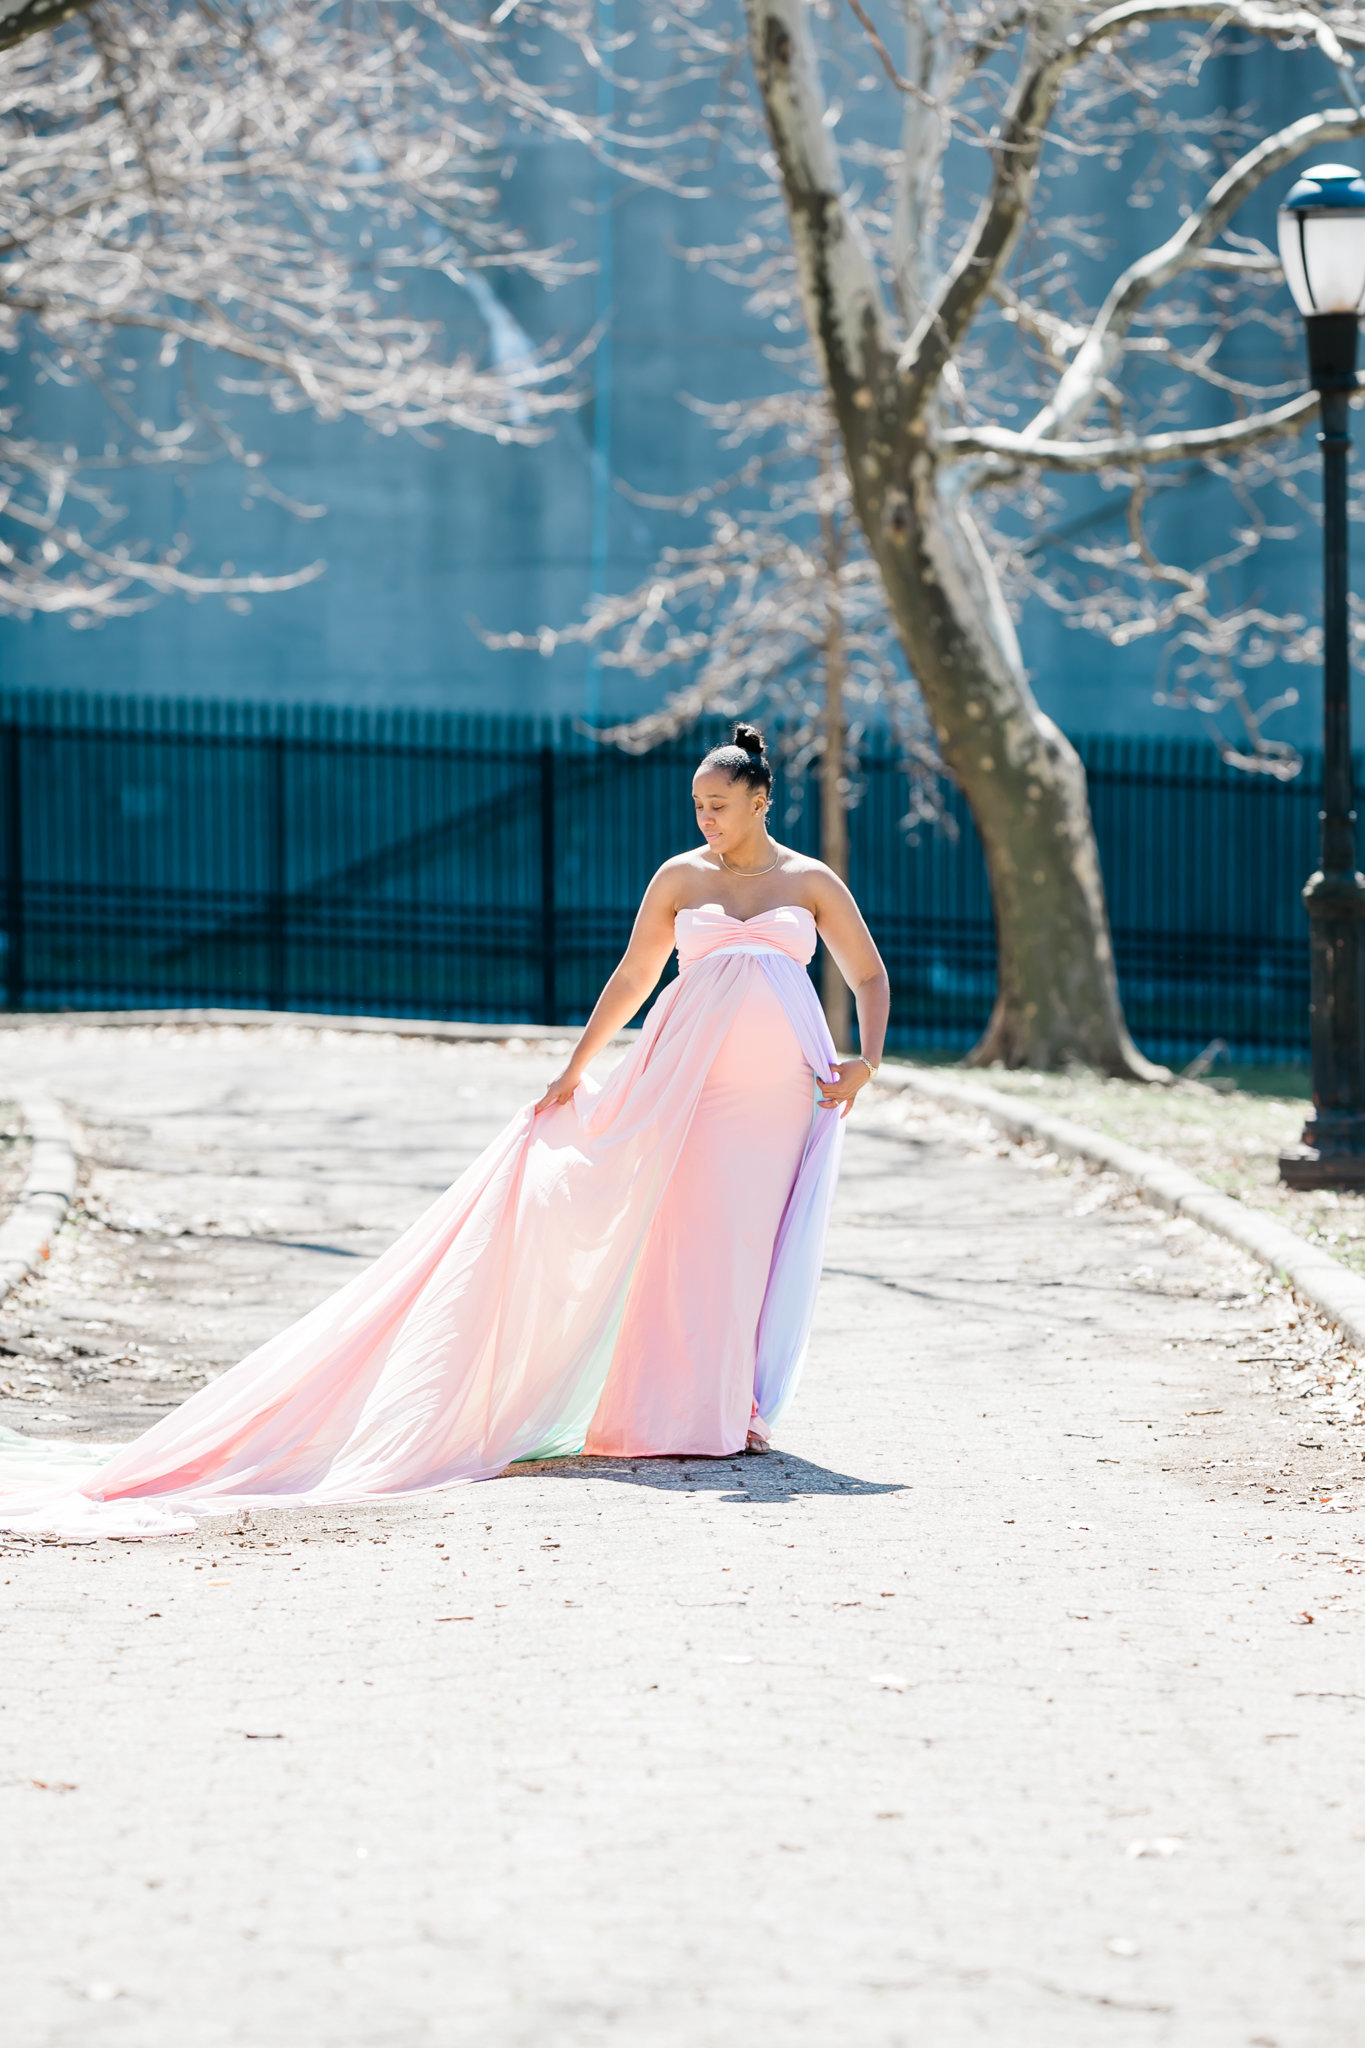 Dreamcatcher Rose Studios - maternity - brooklyn ny - pregnant on the runway